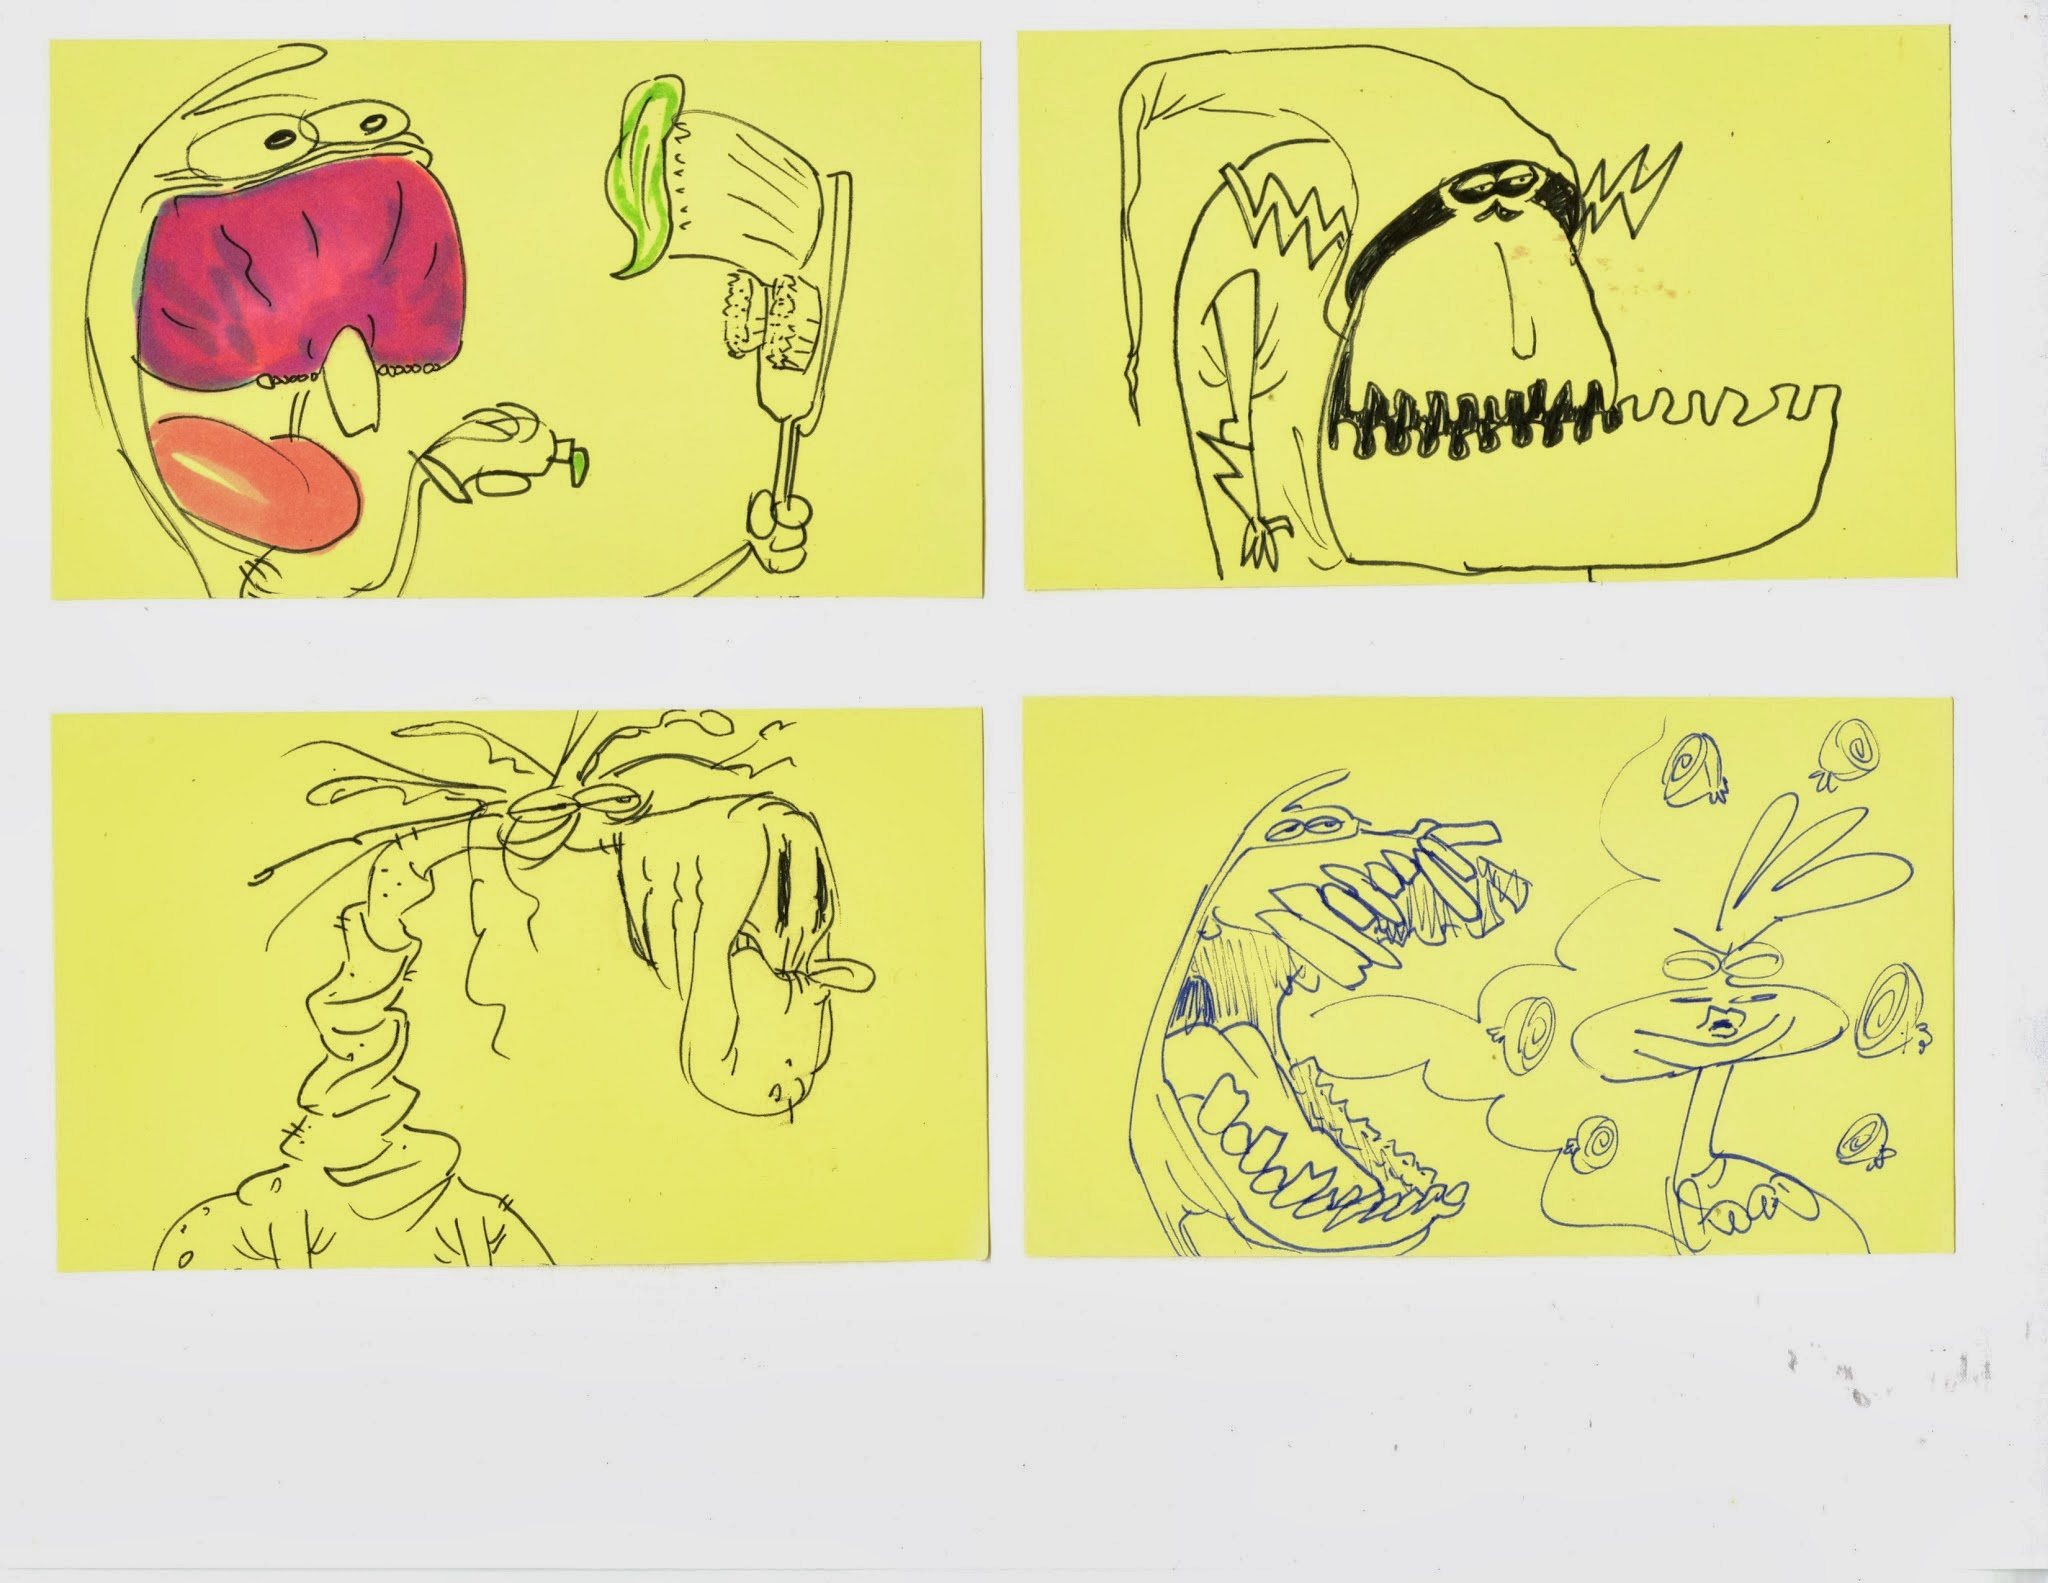 2048x1583 Post It Drawing Scans020 Derpy News Wander Over Yonder